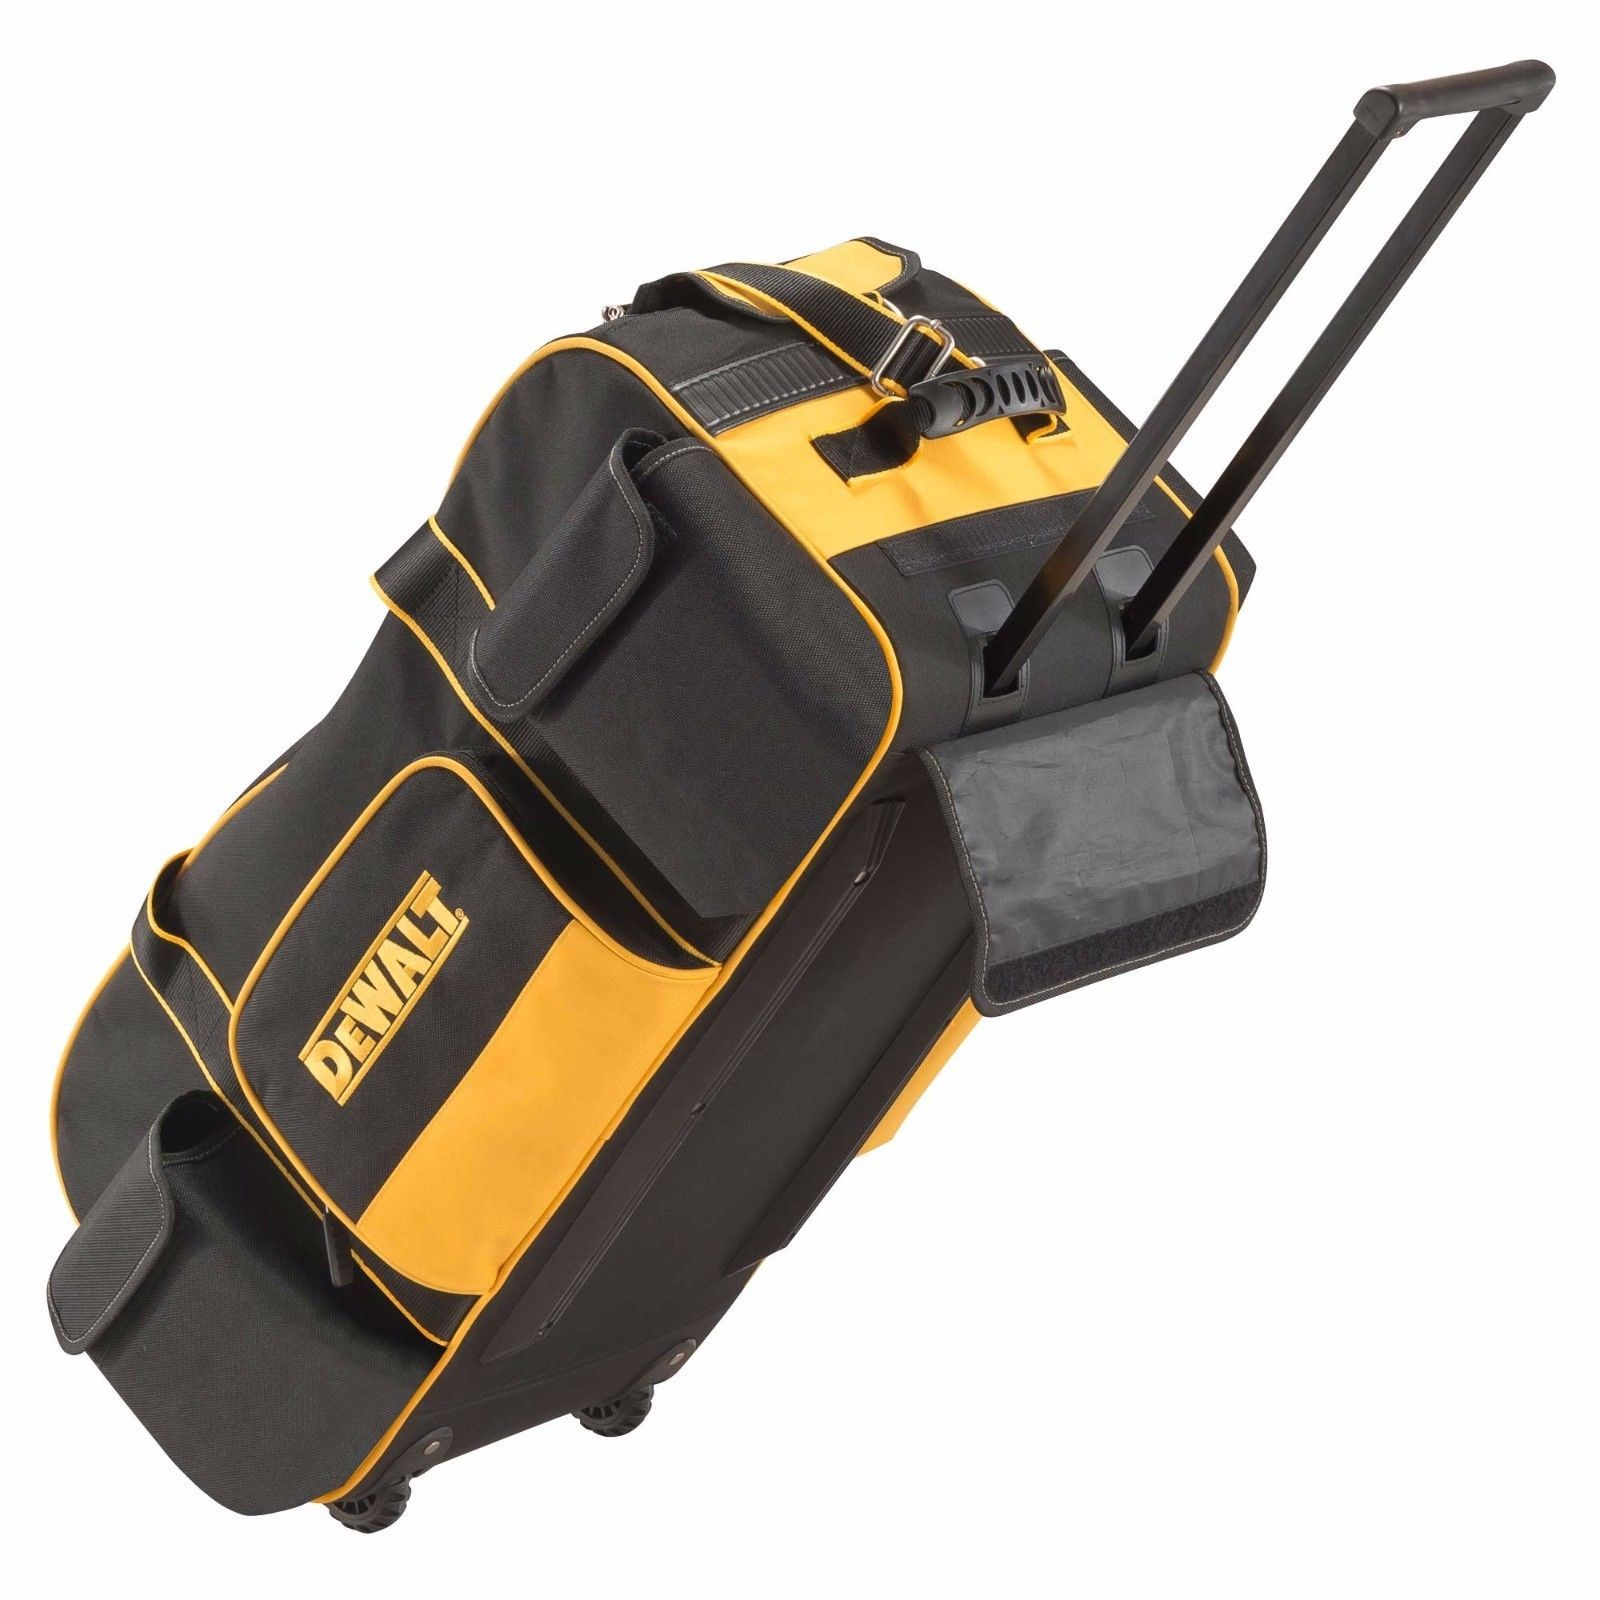 Details about Dewalt DWST1-79210 Large Heavy Duty Tool Bag with Wheels and  Carry Handle d87112ca8afc